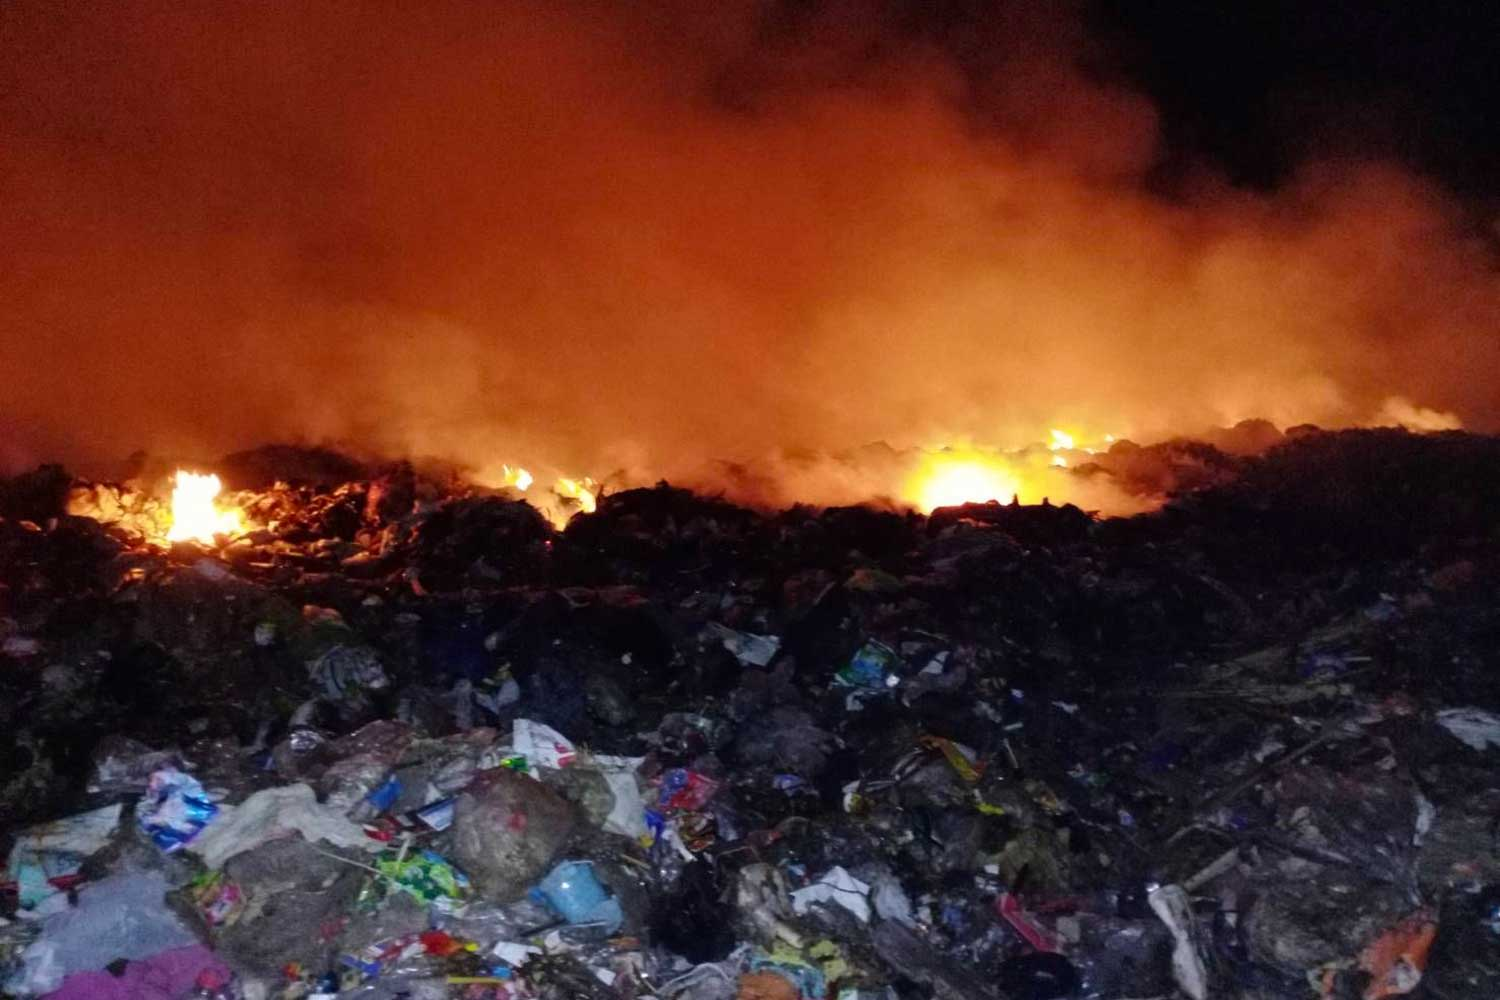 Fire and toxic smoke light up the night at the garbage dump in Nakhon Ratchasima's Pak Chong district overnight. (Photo by Prasit Tangprasert)